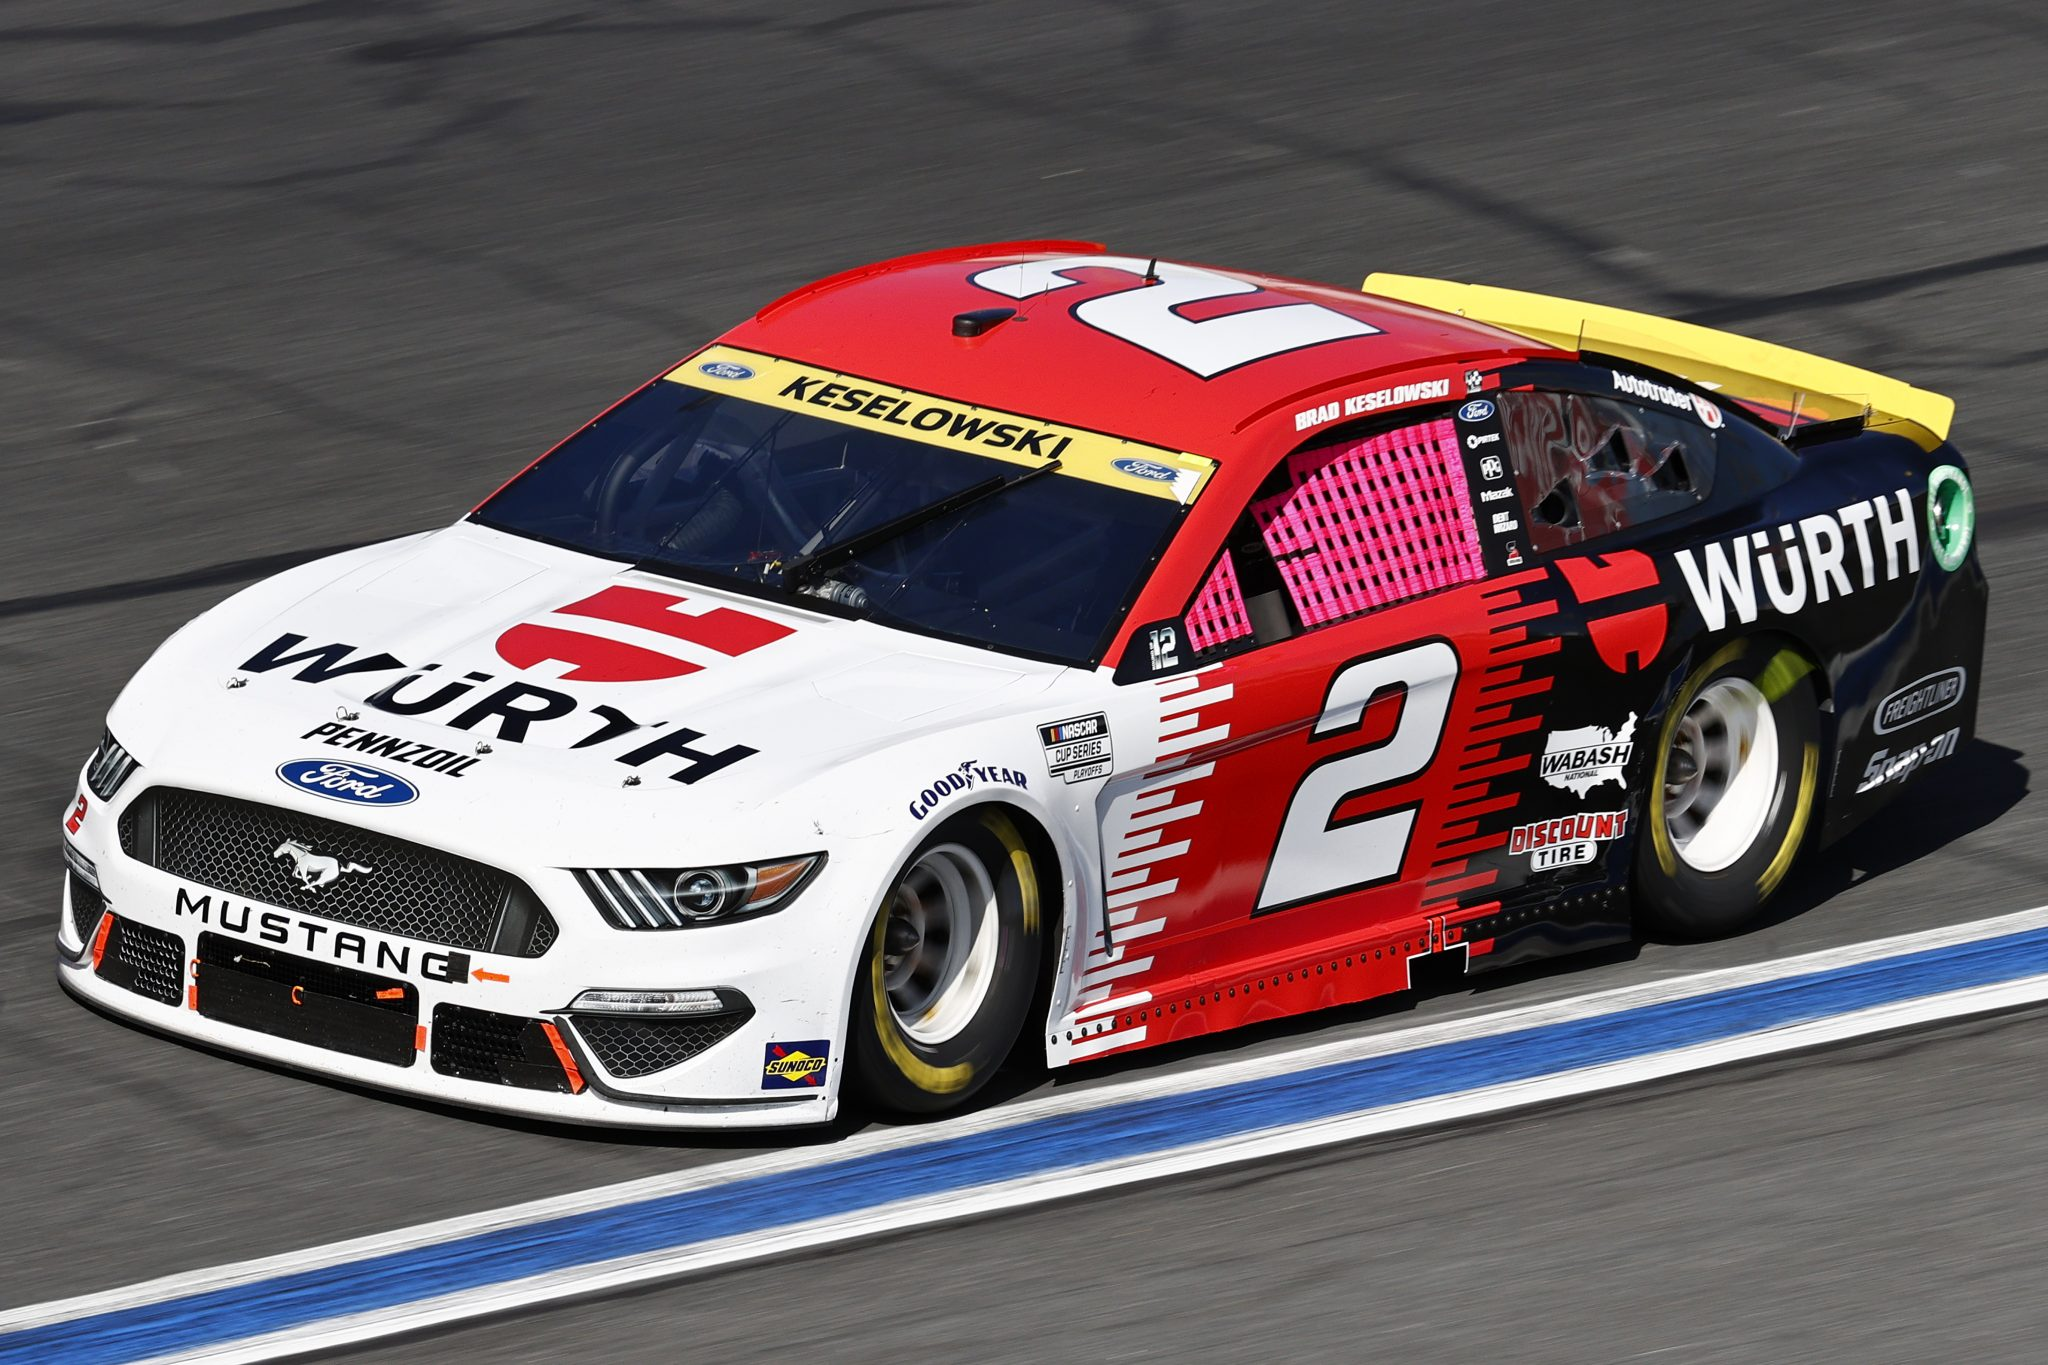 CONCORD, NORTH CAROLINA - OCTOBER 10: Brad Keselowski, driver of the #2 Wurth Ford, drives during the NASCAR Cup Series Bank of America ROVAL 400 at Charlotte Motor Speedway on October 10, 2021 in Concord, North Carolina. (Photo by Jared C. Tilton/Getty Images) | Getty Images